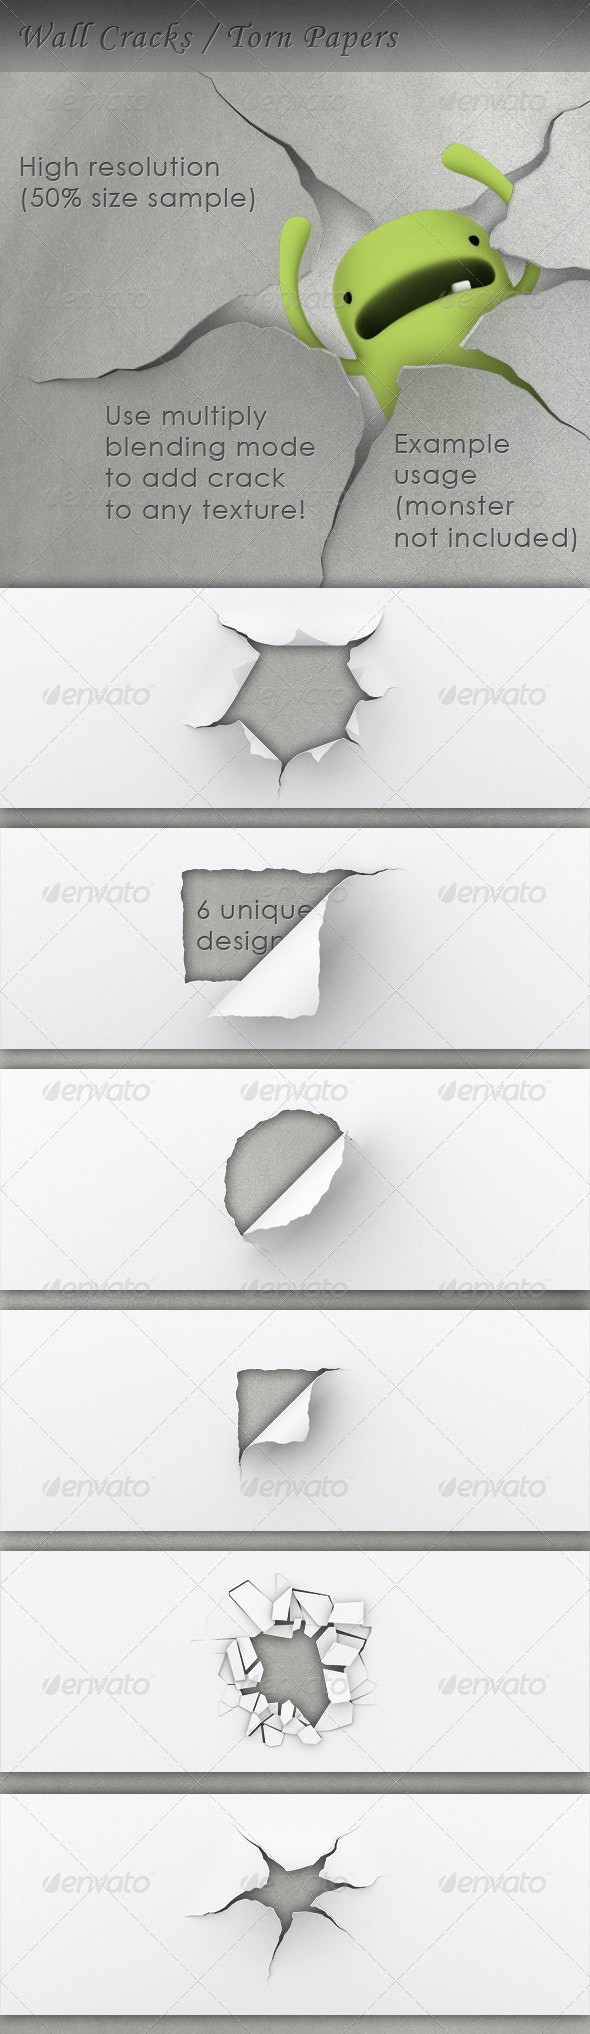 Torn Paper Hole / Wall Crack - 3D Renders Graphics